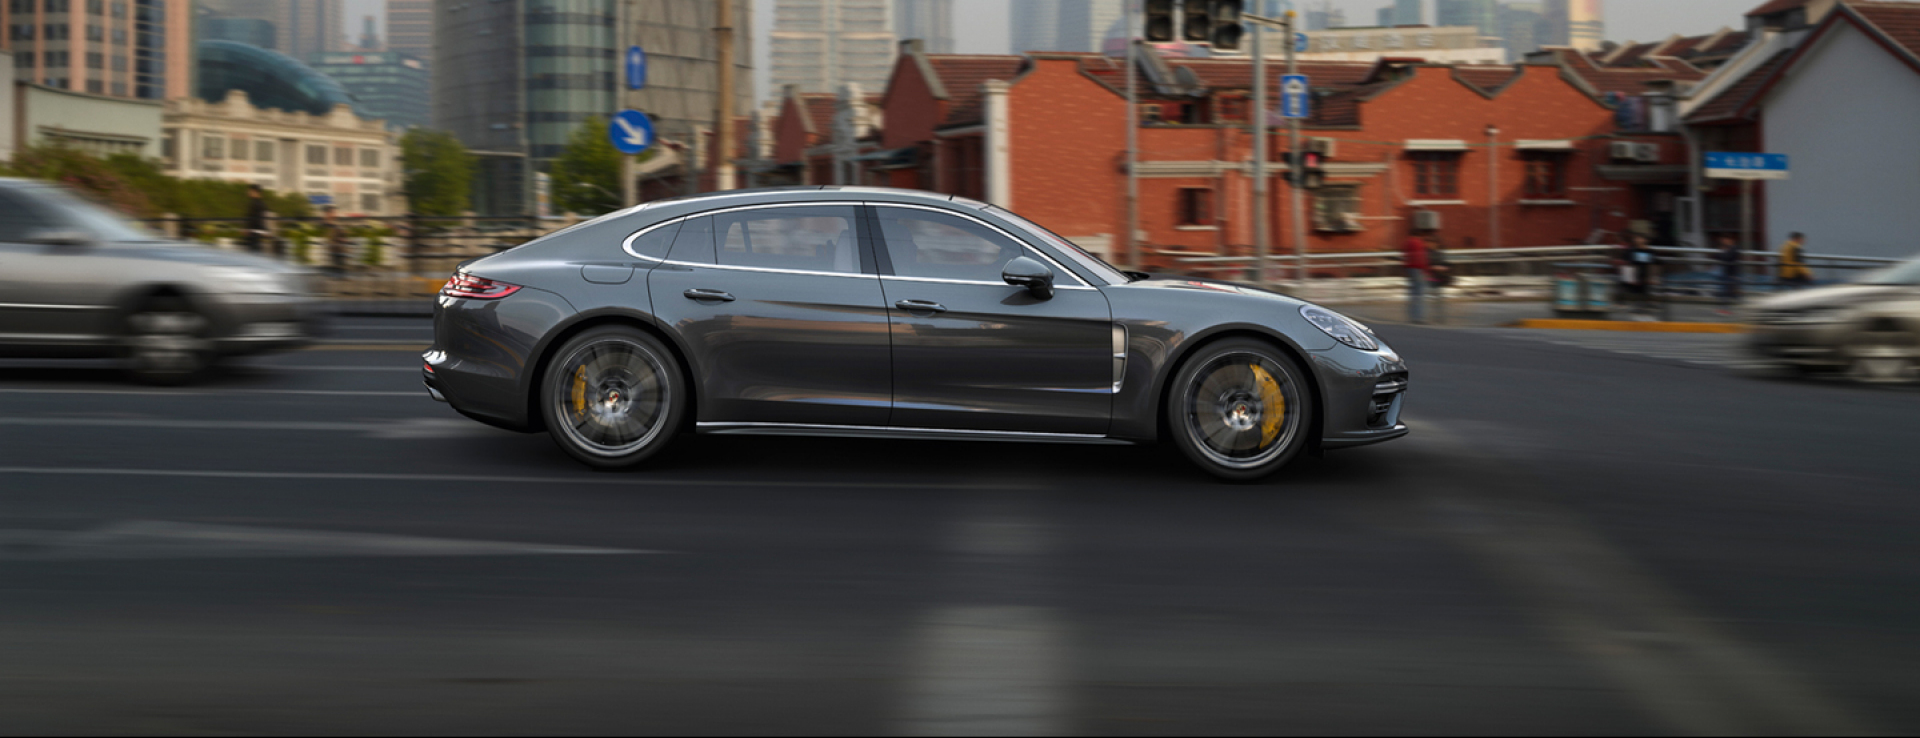 Porsche - Panamera Turbo Executive - Courage changes everything.